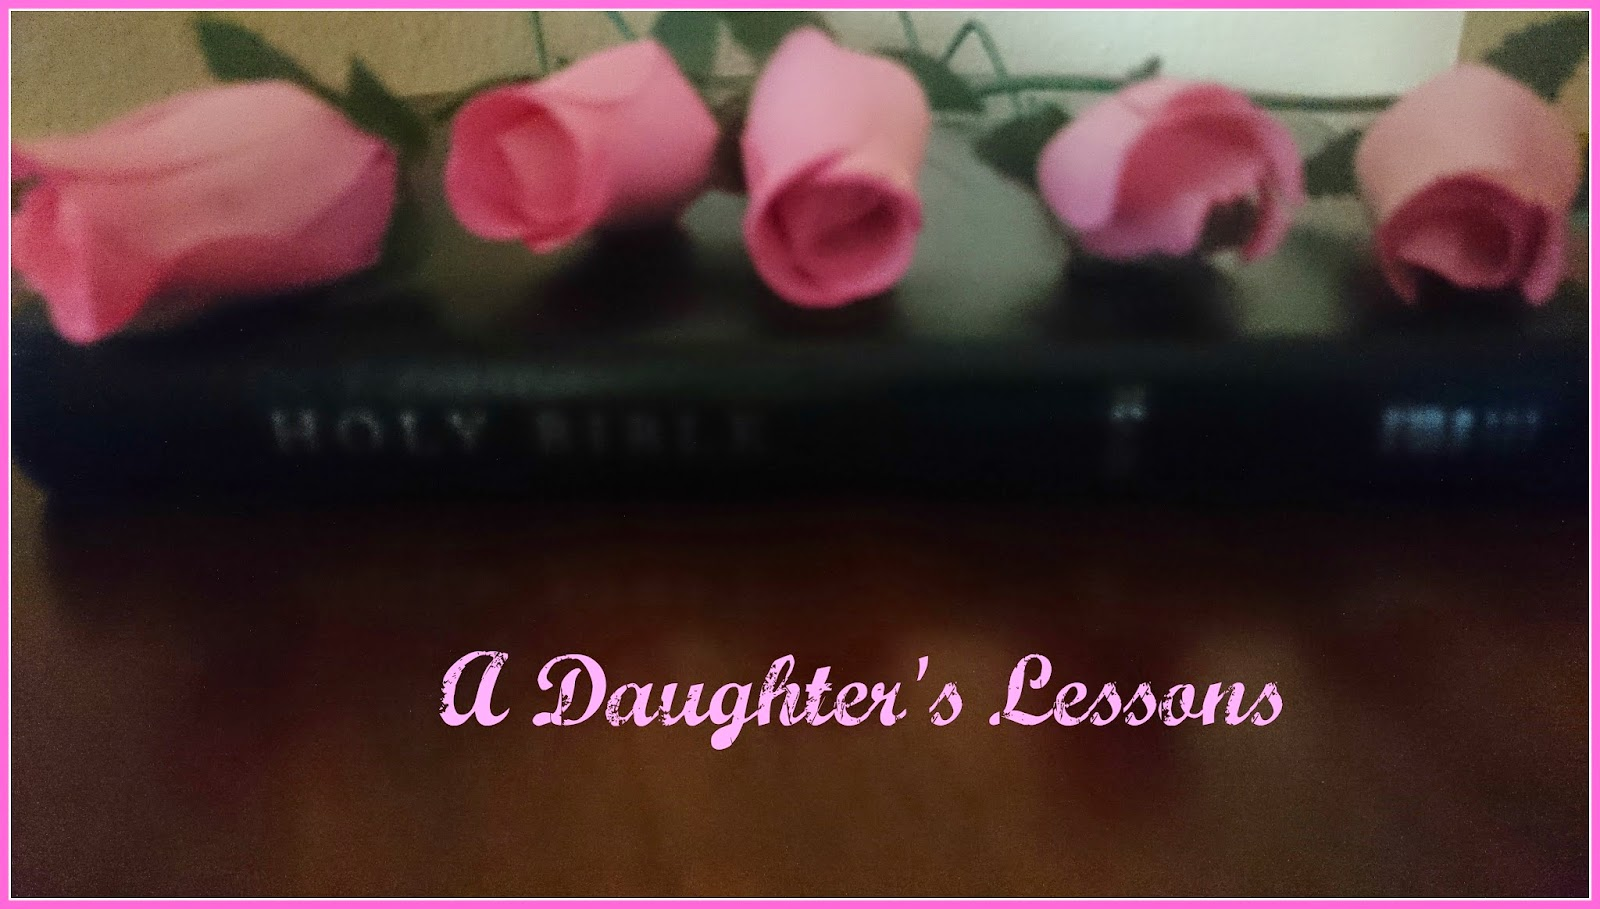 http://raisingsamuels.blogspot.com/2014/05/a-daughters-lessons.html